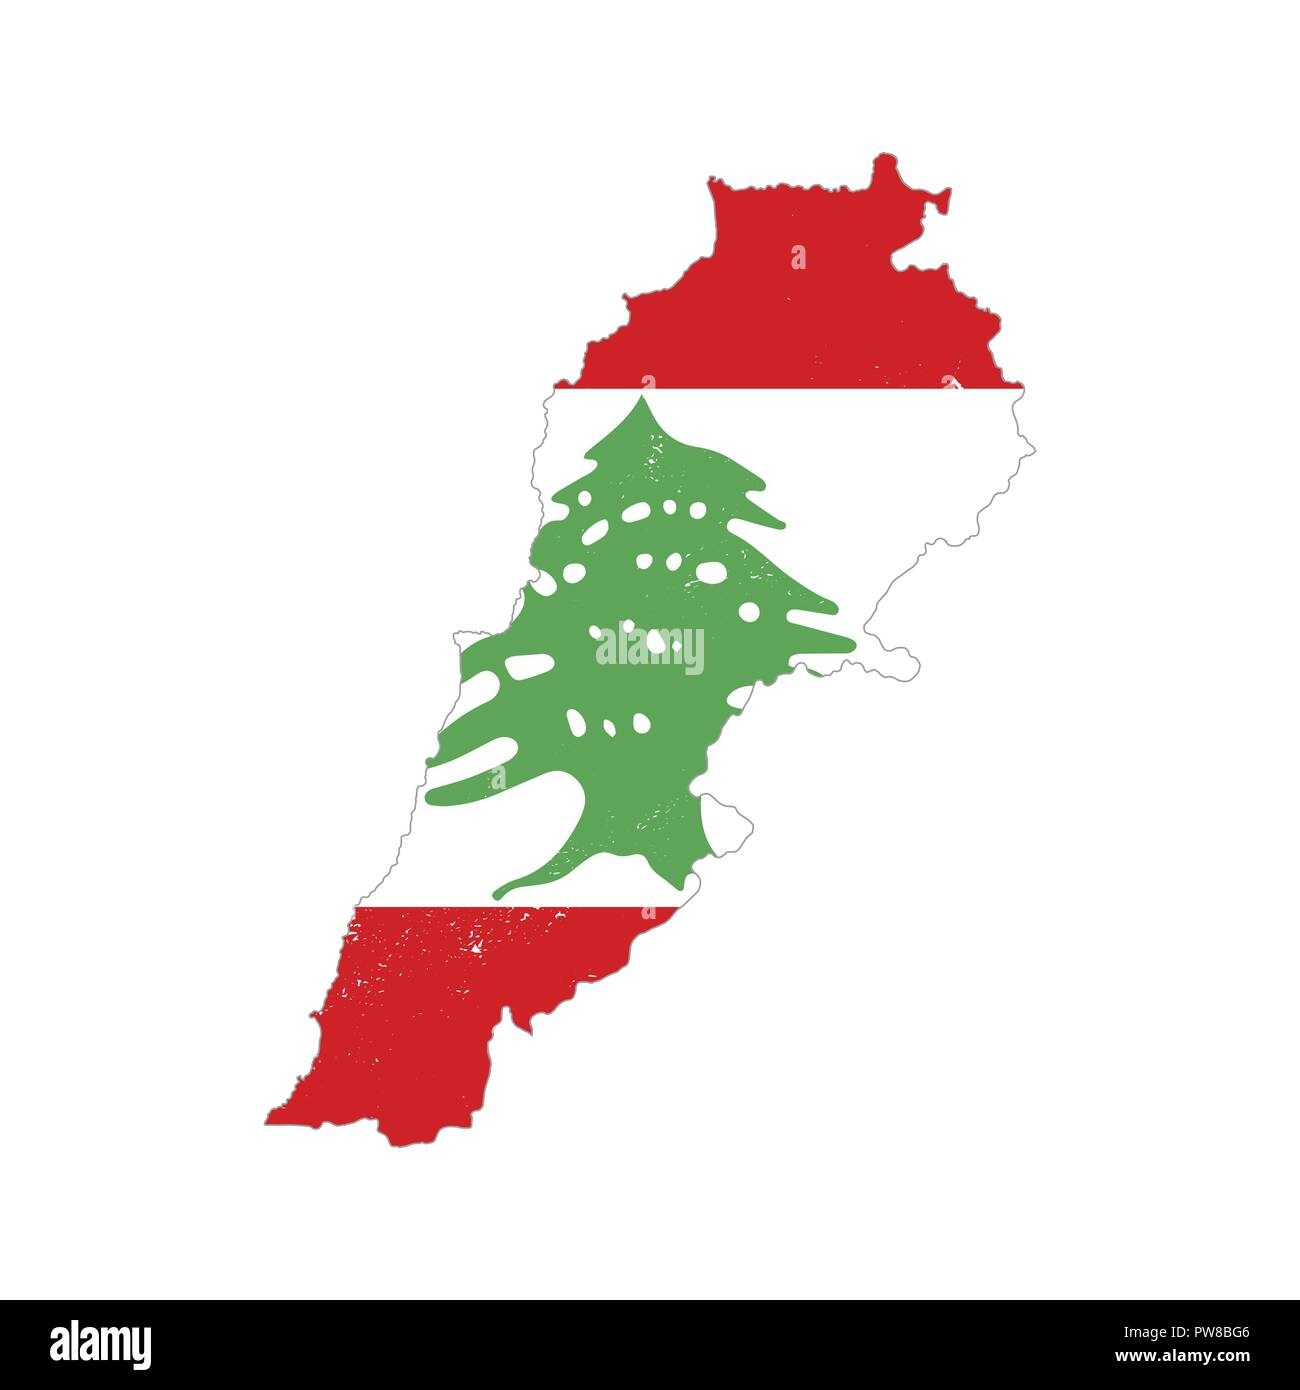 Lebanon country silhouette with flag on background, isolated on white Stock Vector